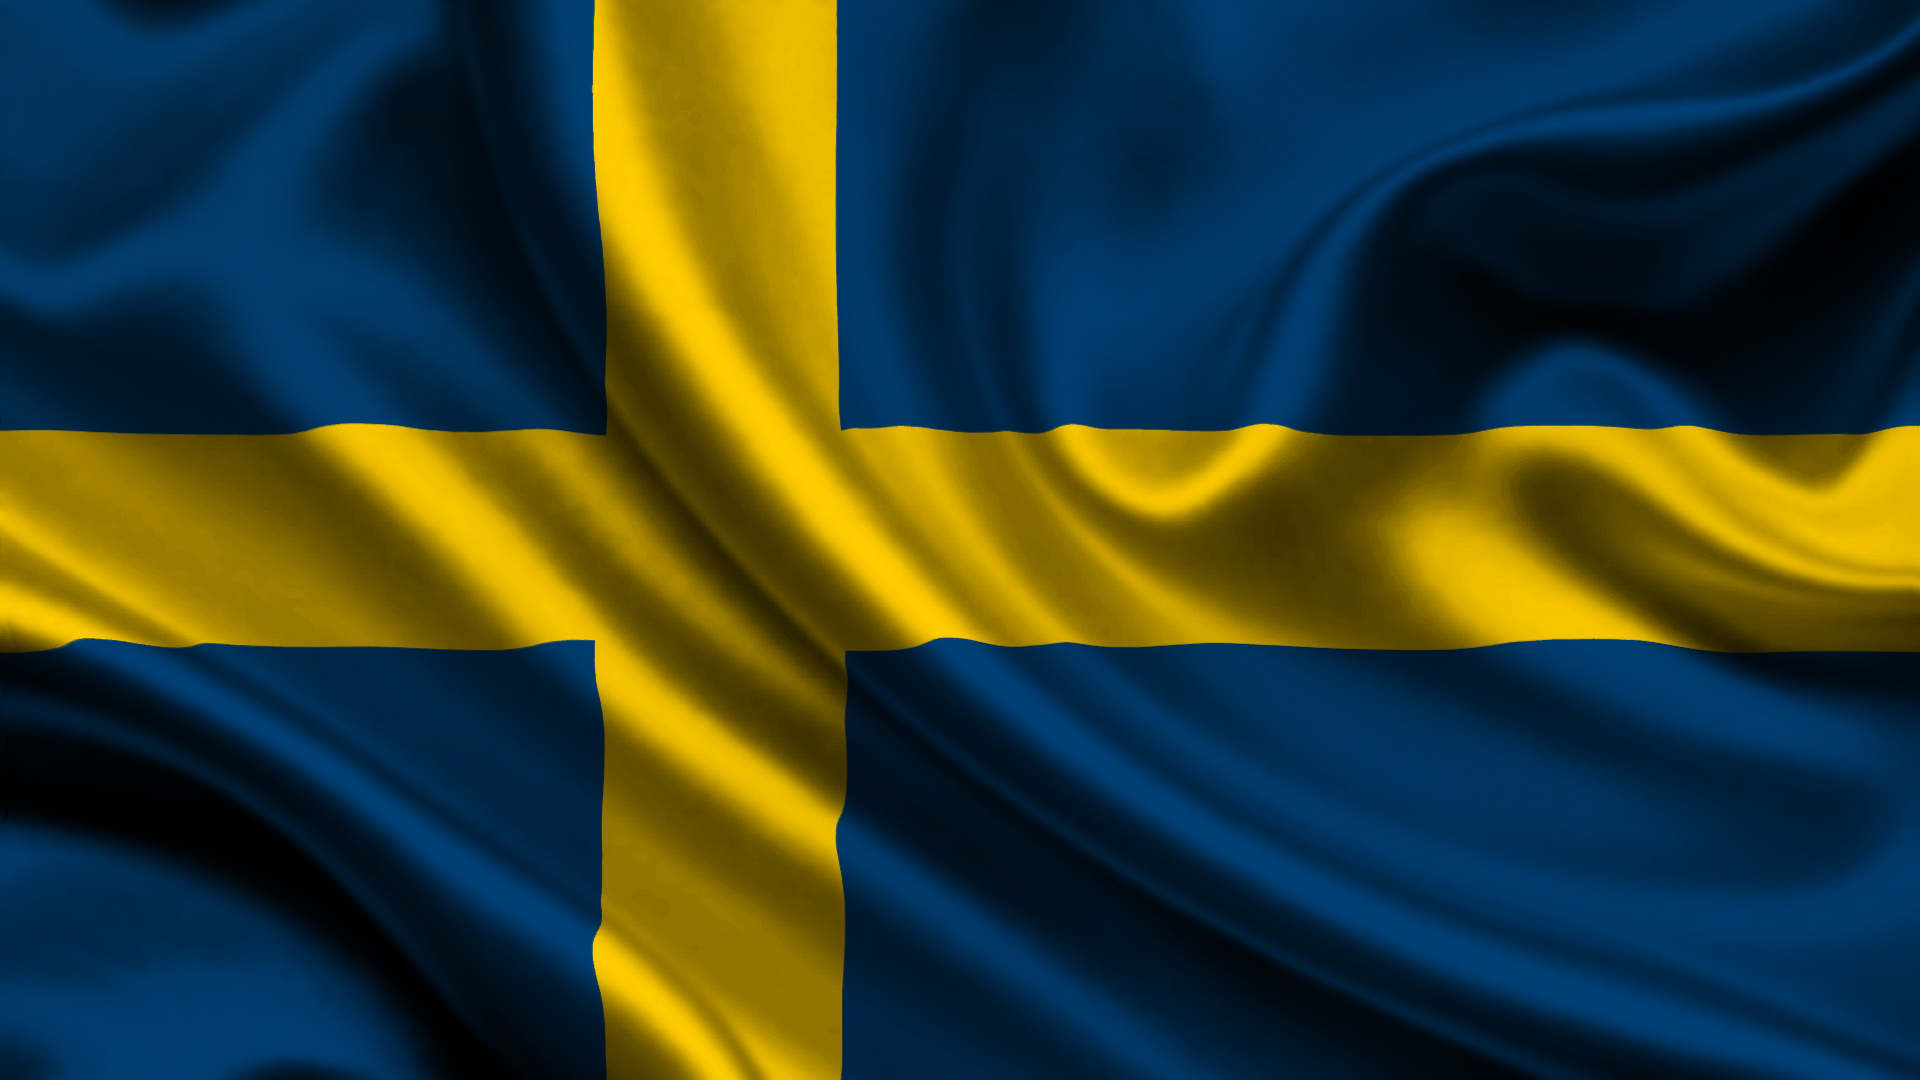 sweden-flag-desktop-wallpaper-50574-52266-hd-wallpapers